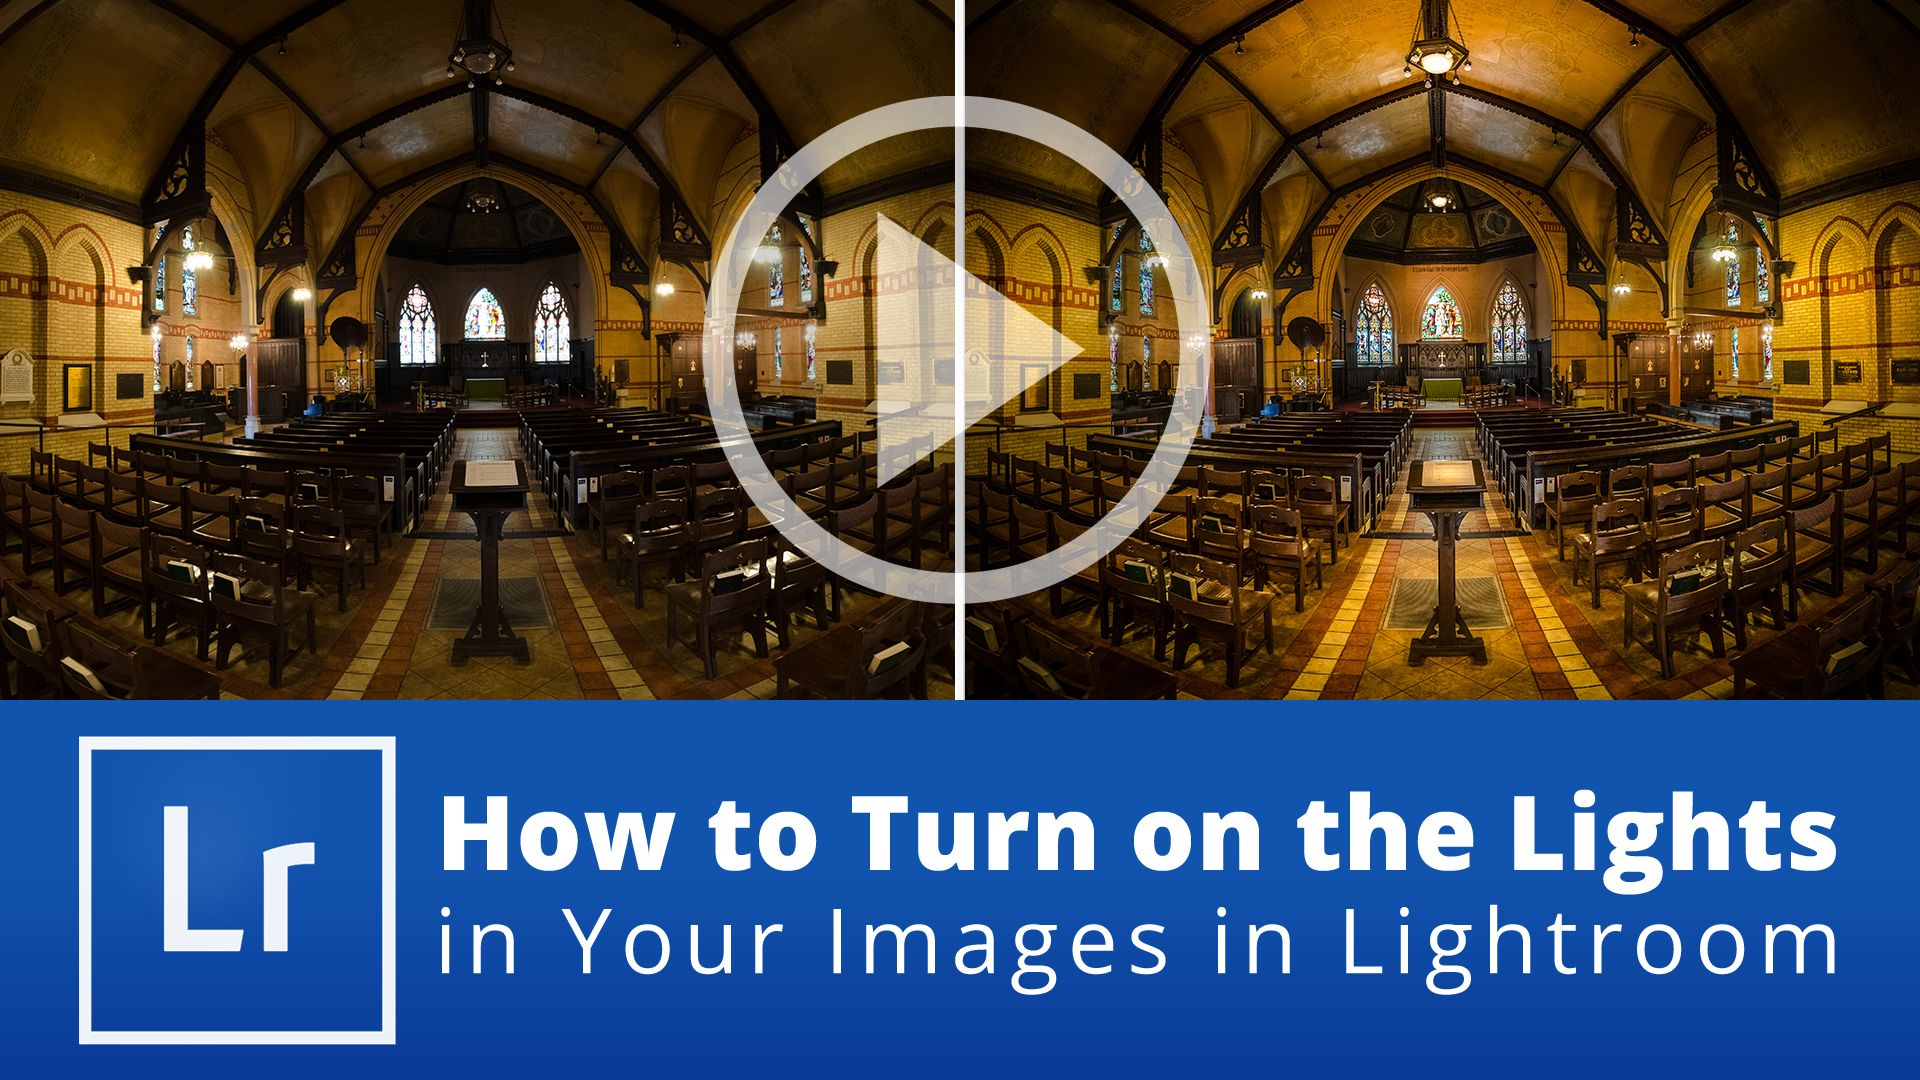 How to Turn on the Lights in Your Images in Lightroom